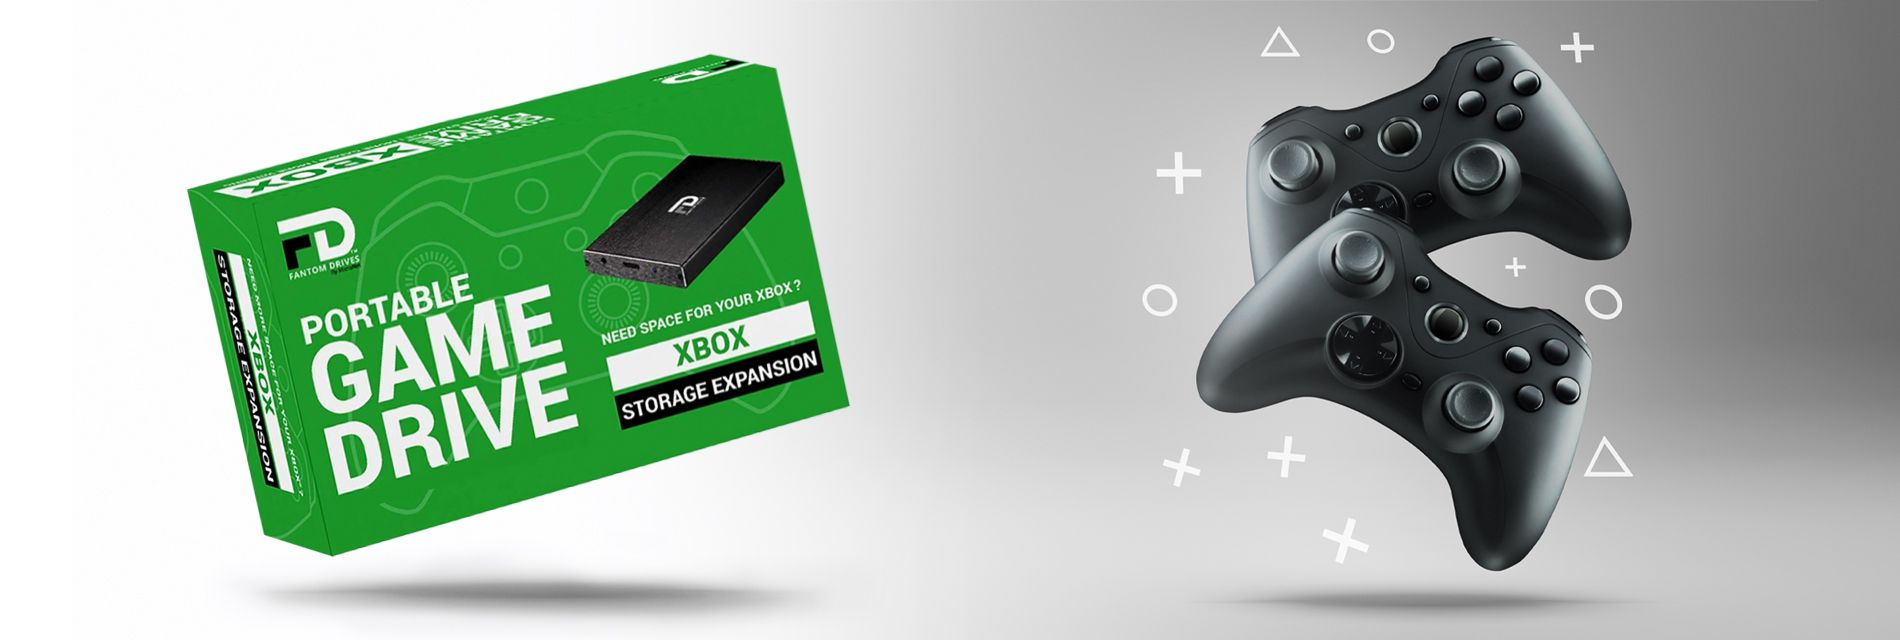 Xbox_Portable_Game_Drive_Banner